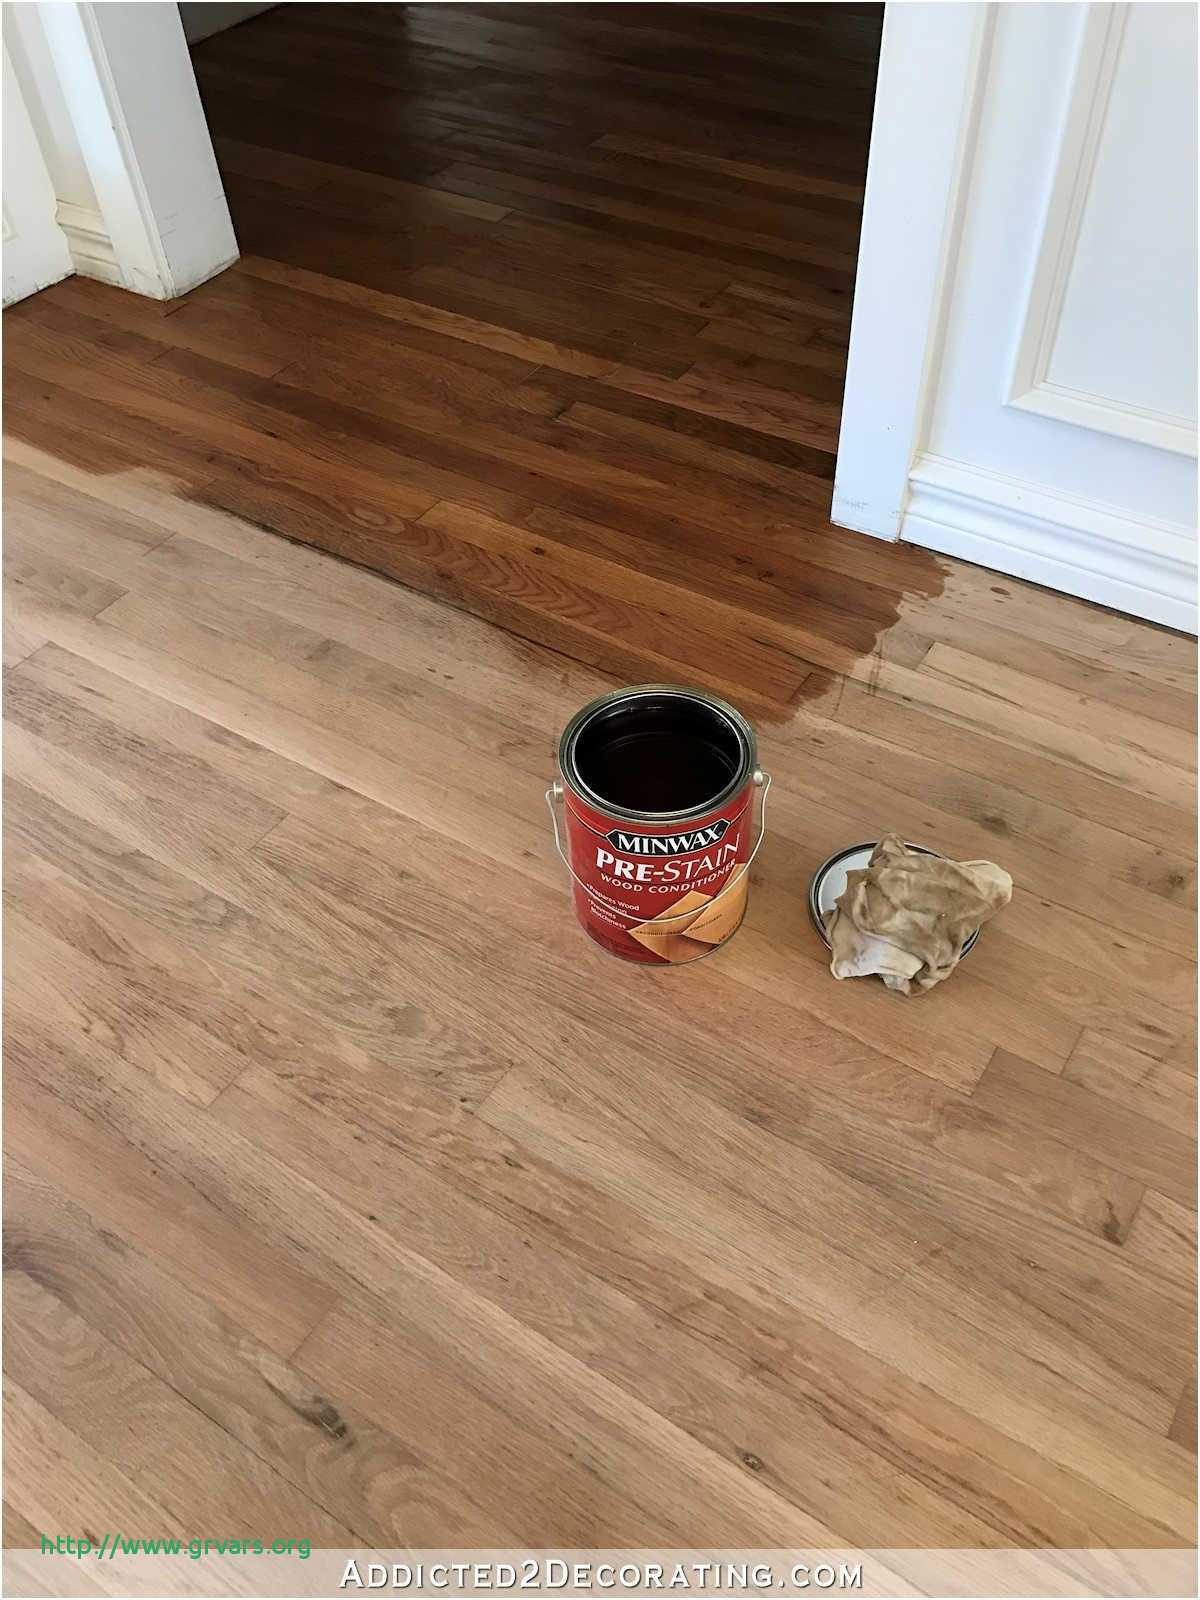 hardwood flooring adhesive glue of 20 charmant how to remove old glue from wood floor ideas blog regarding cost to remove carpet and install laminate flooring graphies hardwood floor cleaning wood floor sealer wood